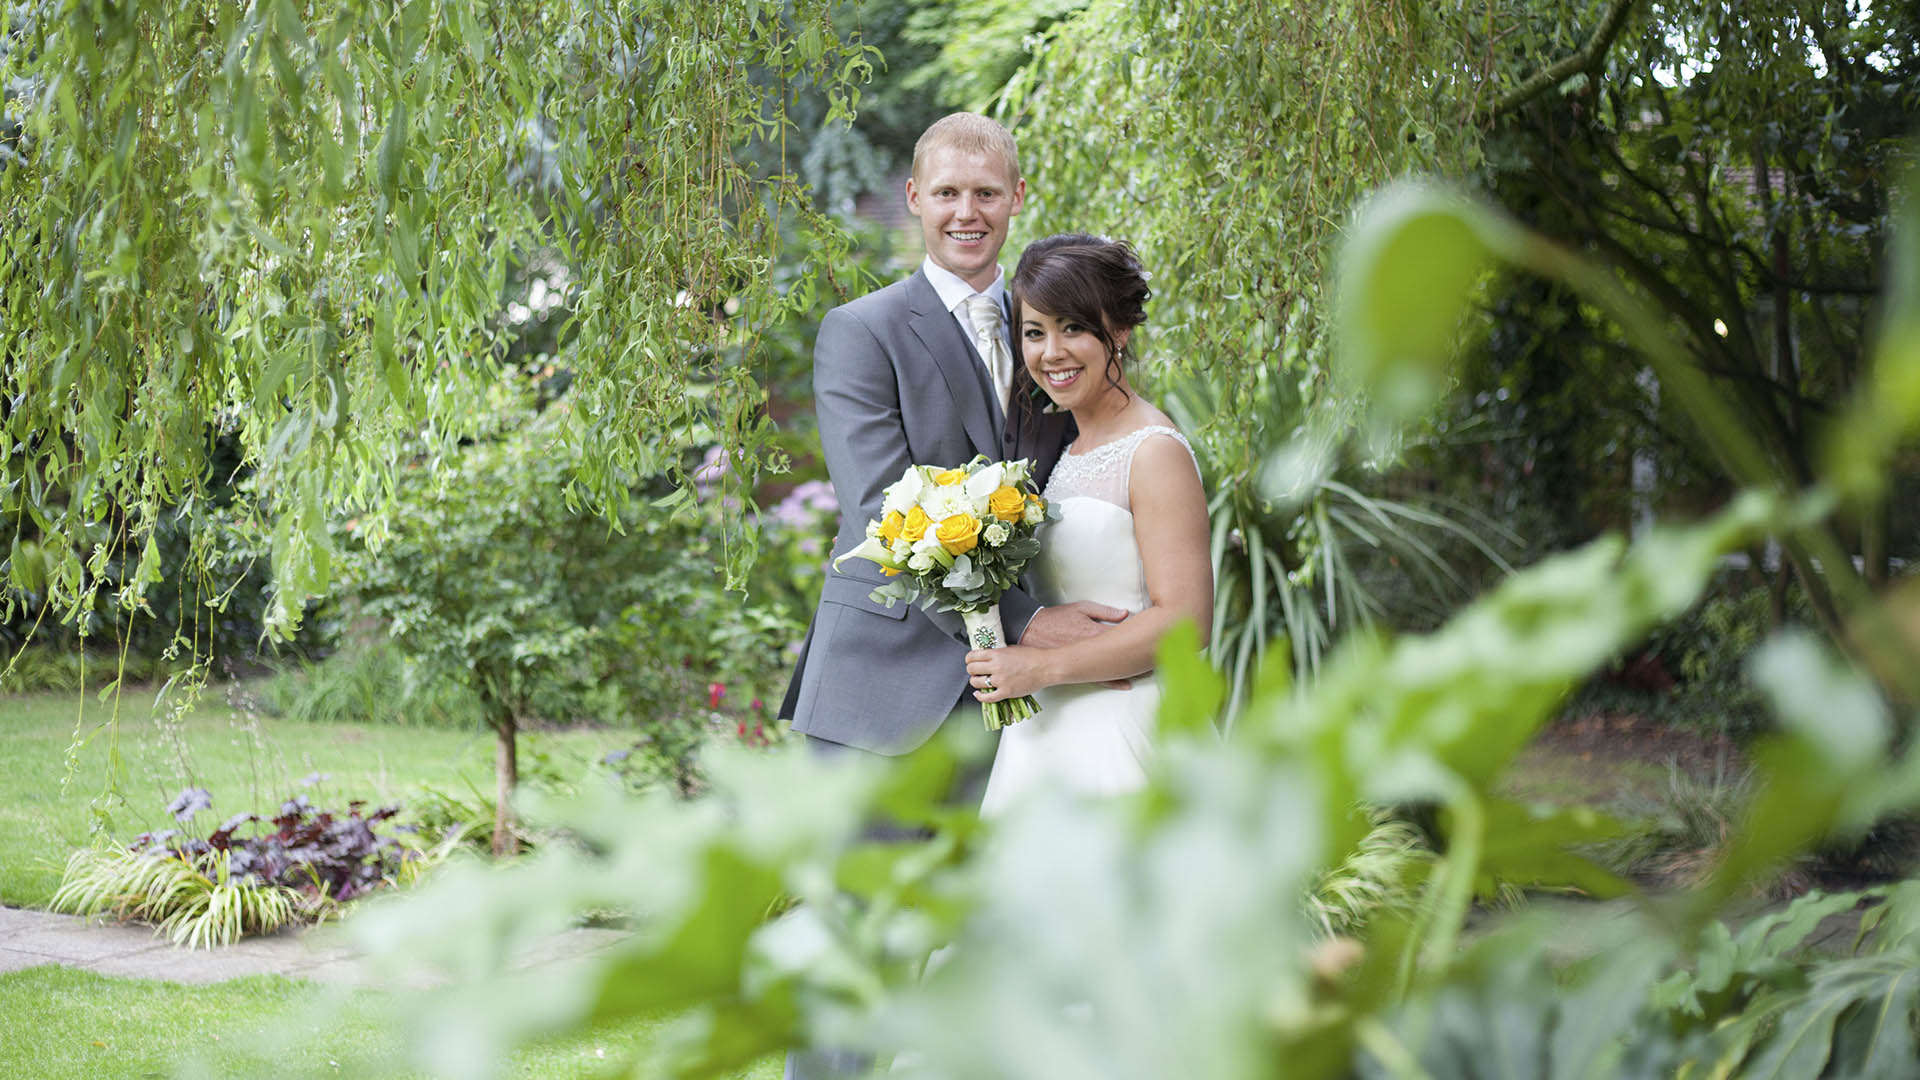 Wonderful garden wedding venues in Lancashire Barton Grange Hotel